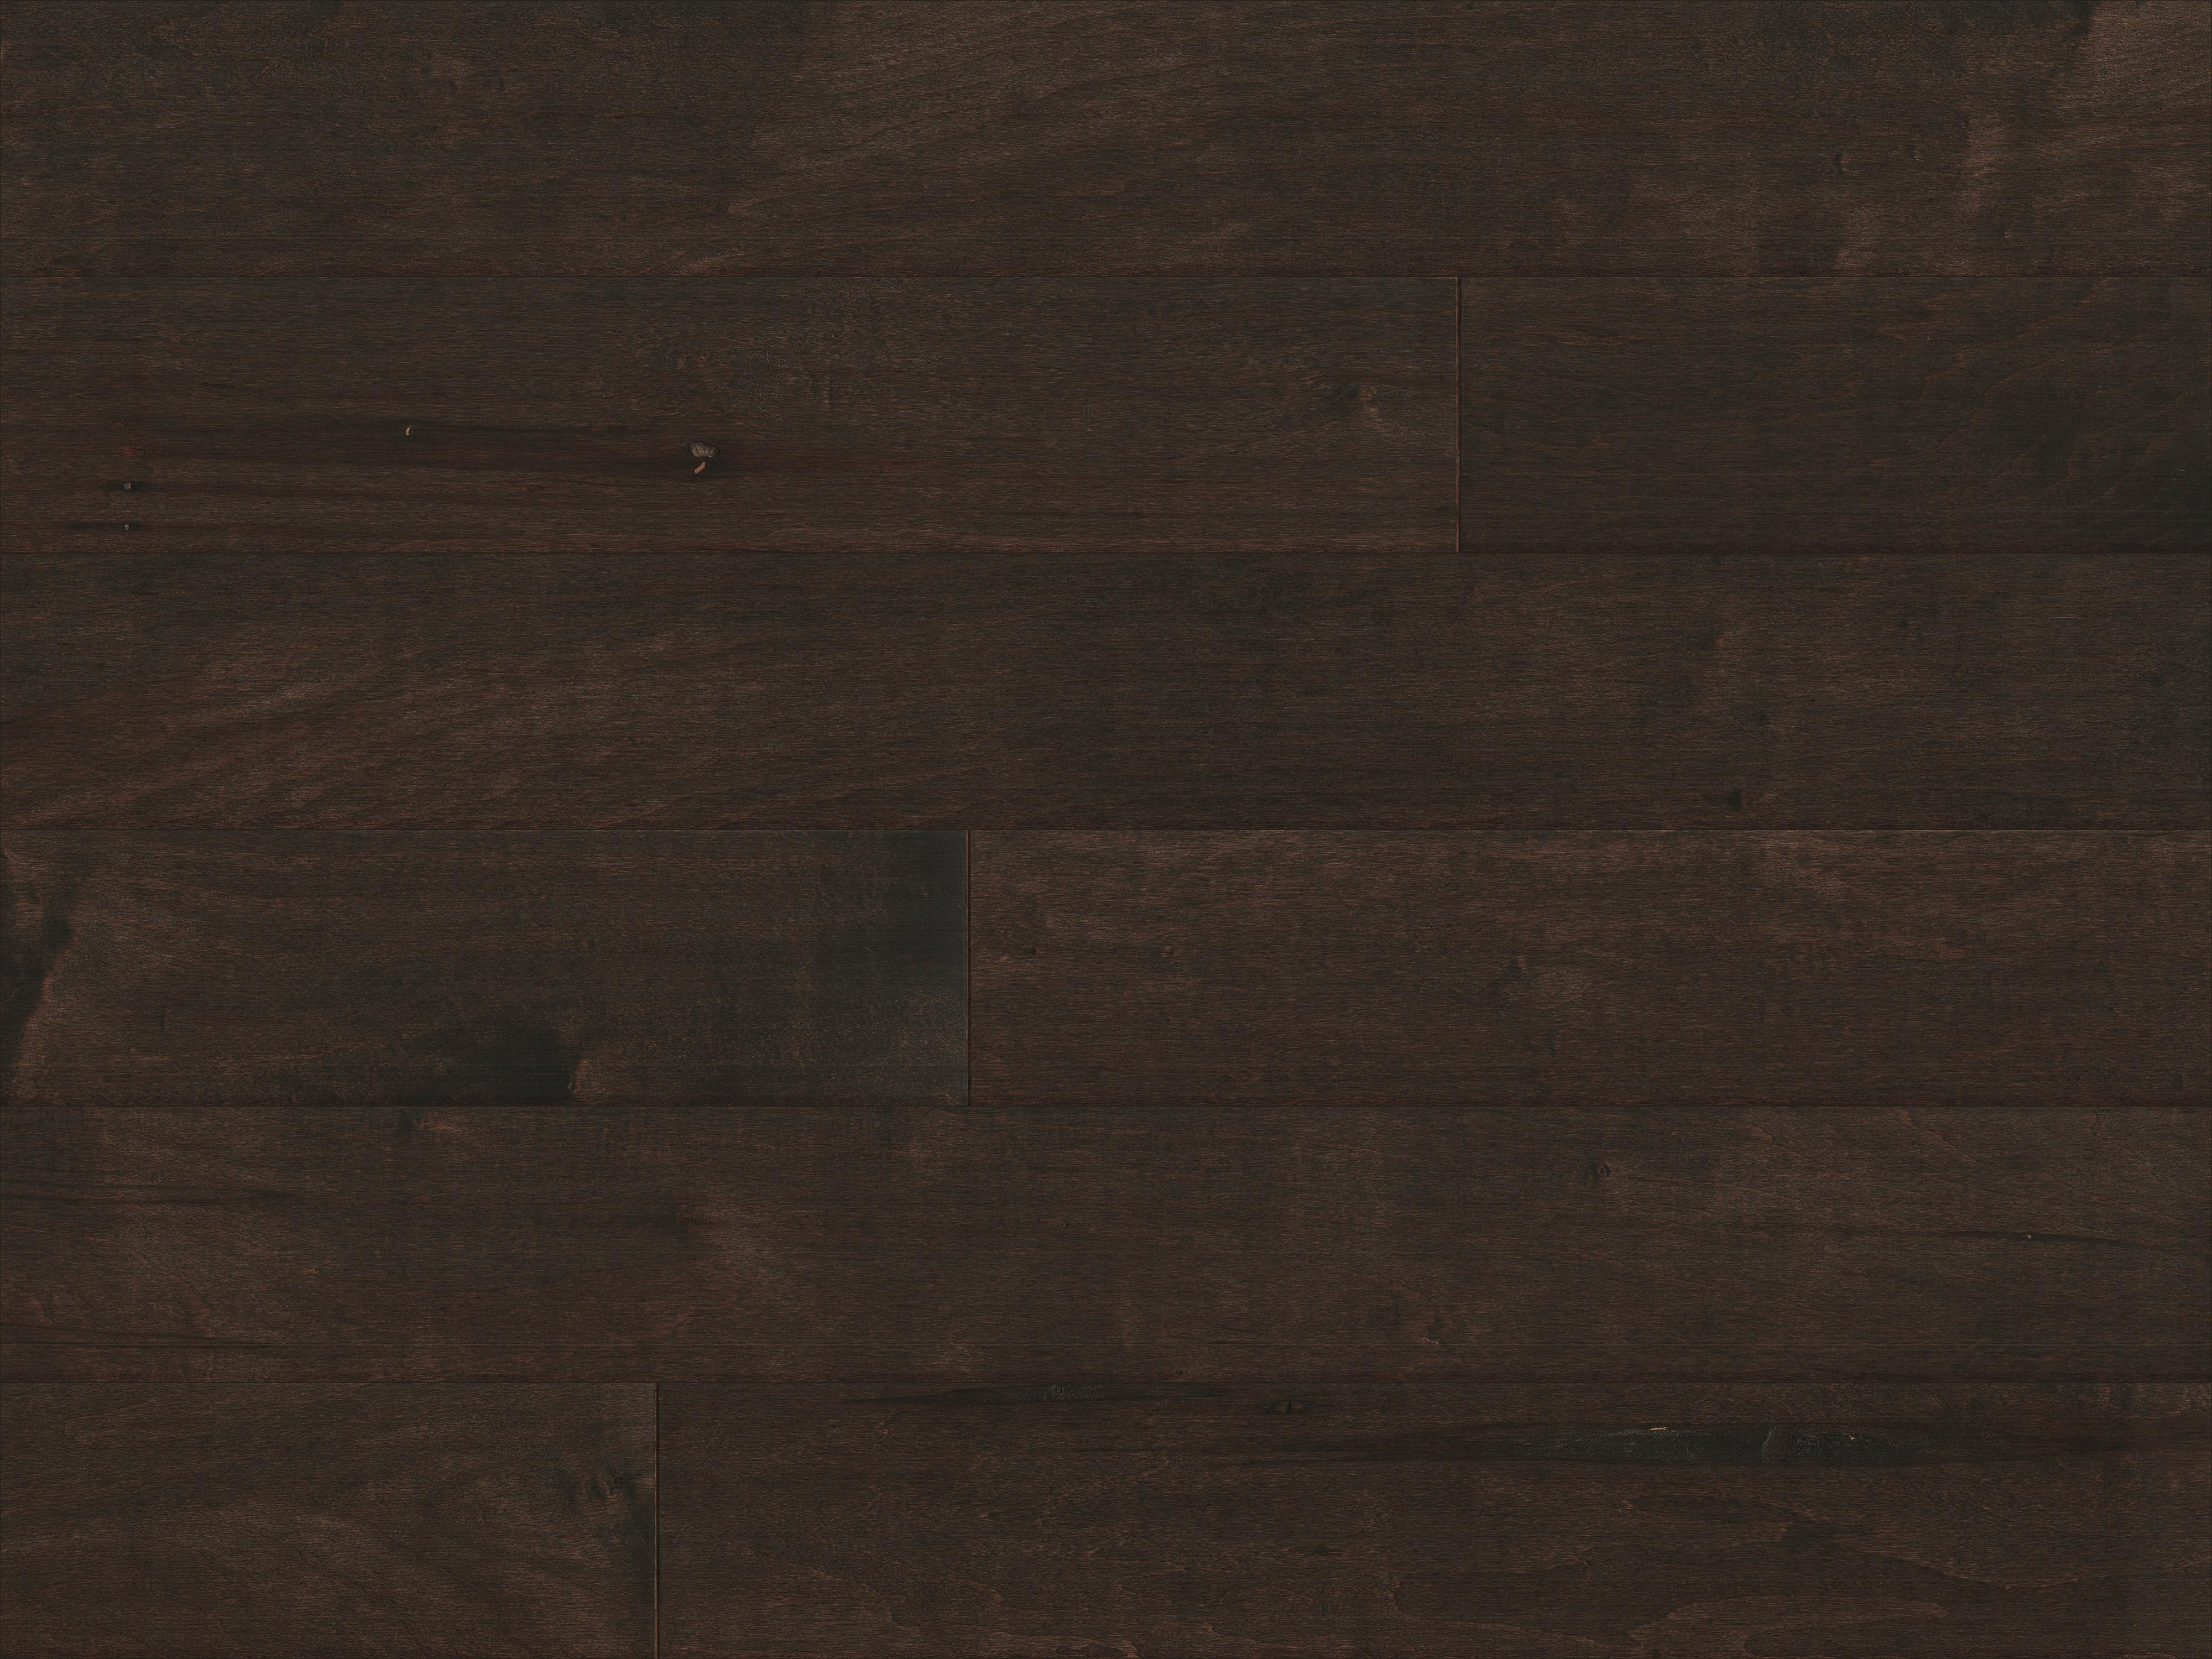 extra wide plank hardwood flooring of mullican ridgecrest maple cappuccino 1 2 thick 5 wide engineered throughout mullican ridgecrest maple cappuccino 1 2 thick 5 wide engineered hardwood flooring